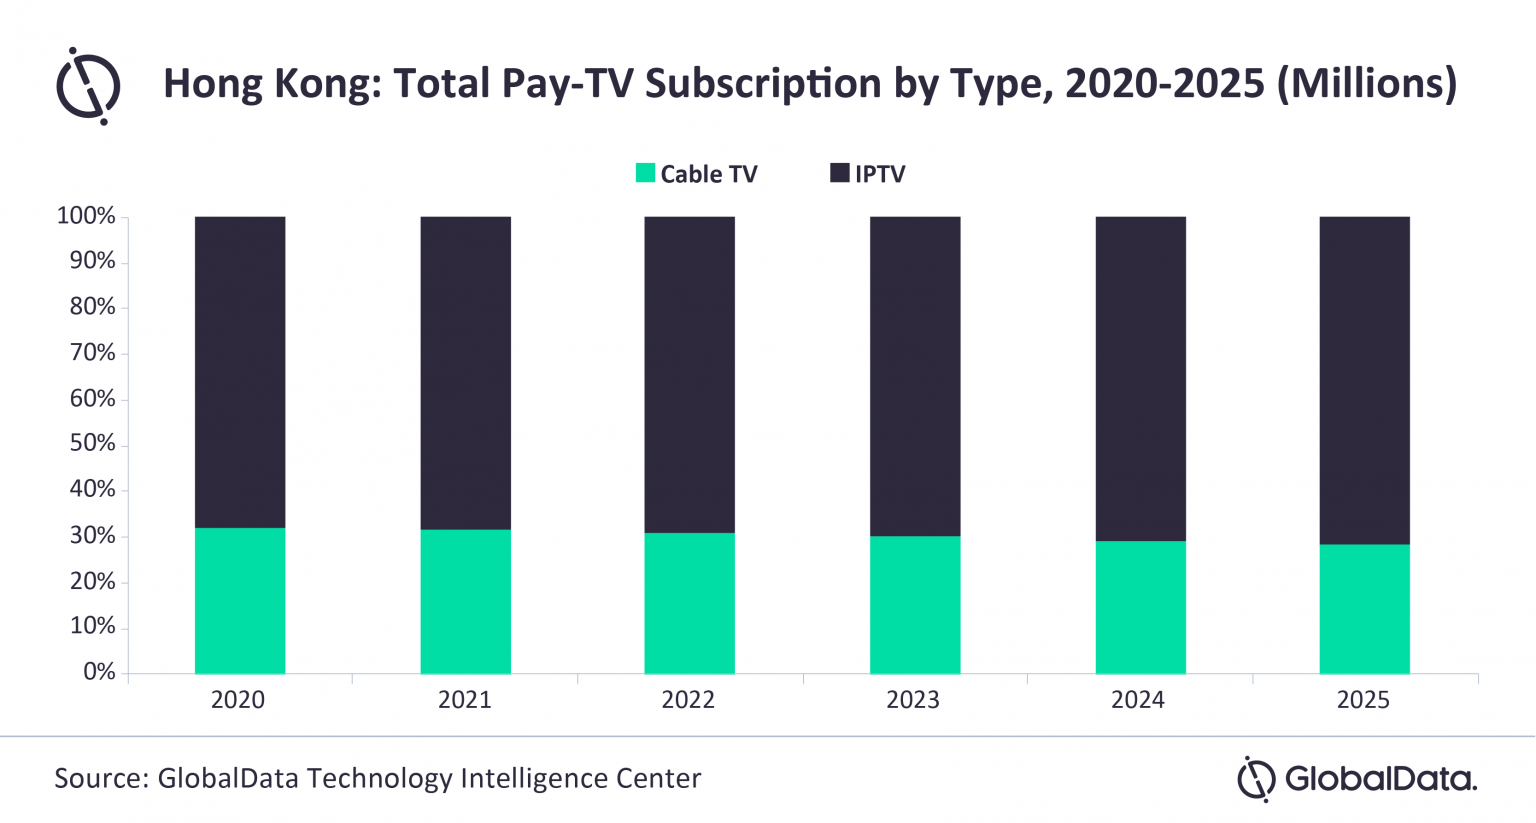 Hong Kong: Pay TV Subscriptions by Type - Cable TV, IPTV - 2020-2025